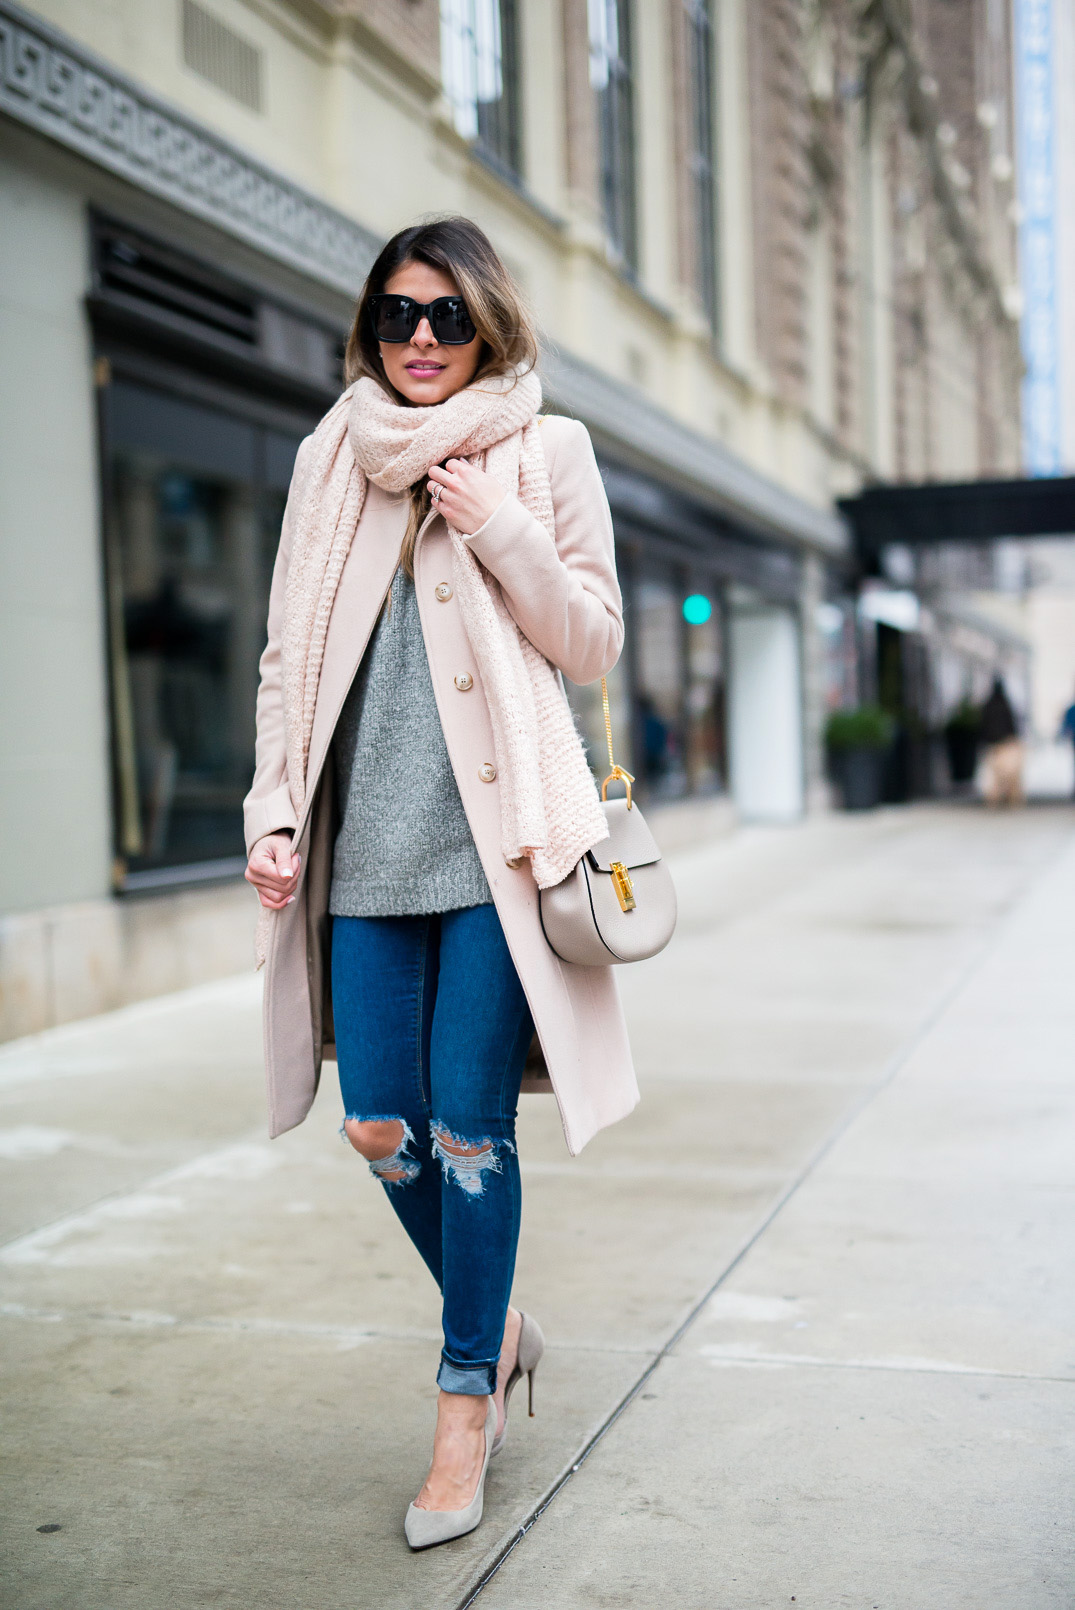 Pastel pink is a trend this winter! Pam Hetlinger rocks this pale rose coat and matching scarf; pairing the two with simple distressed denim jeans and pastel coloured heels. Coat: Reiss, Sweater:Nordstrom, Jeans: Asos, Shoes: Barneys.